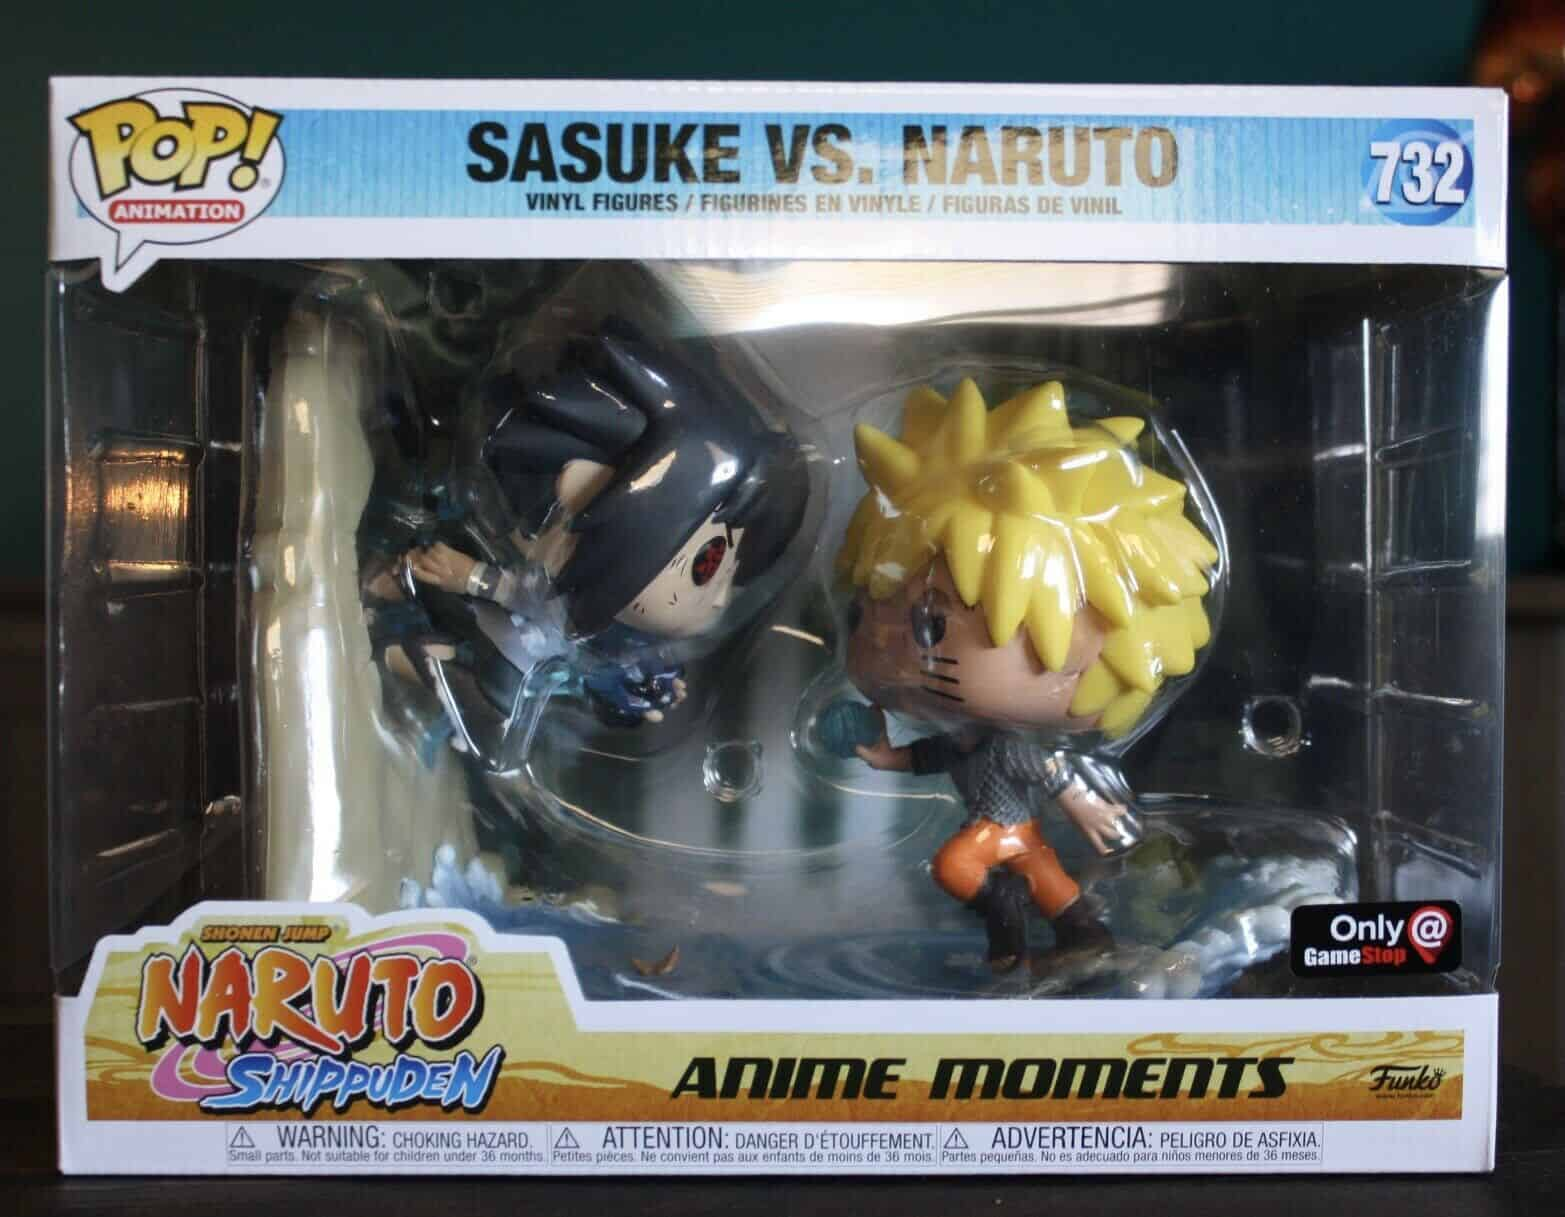 Naruto vs. Sasuke Moment GameStop Funko Pop